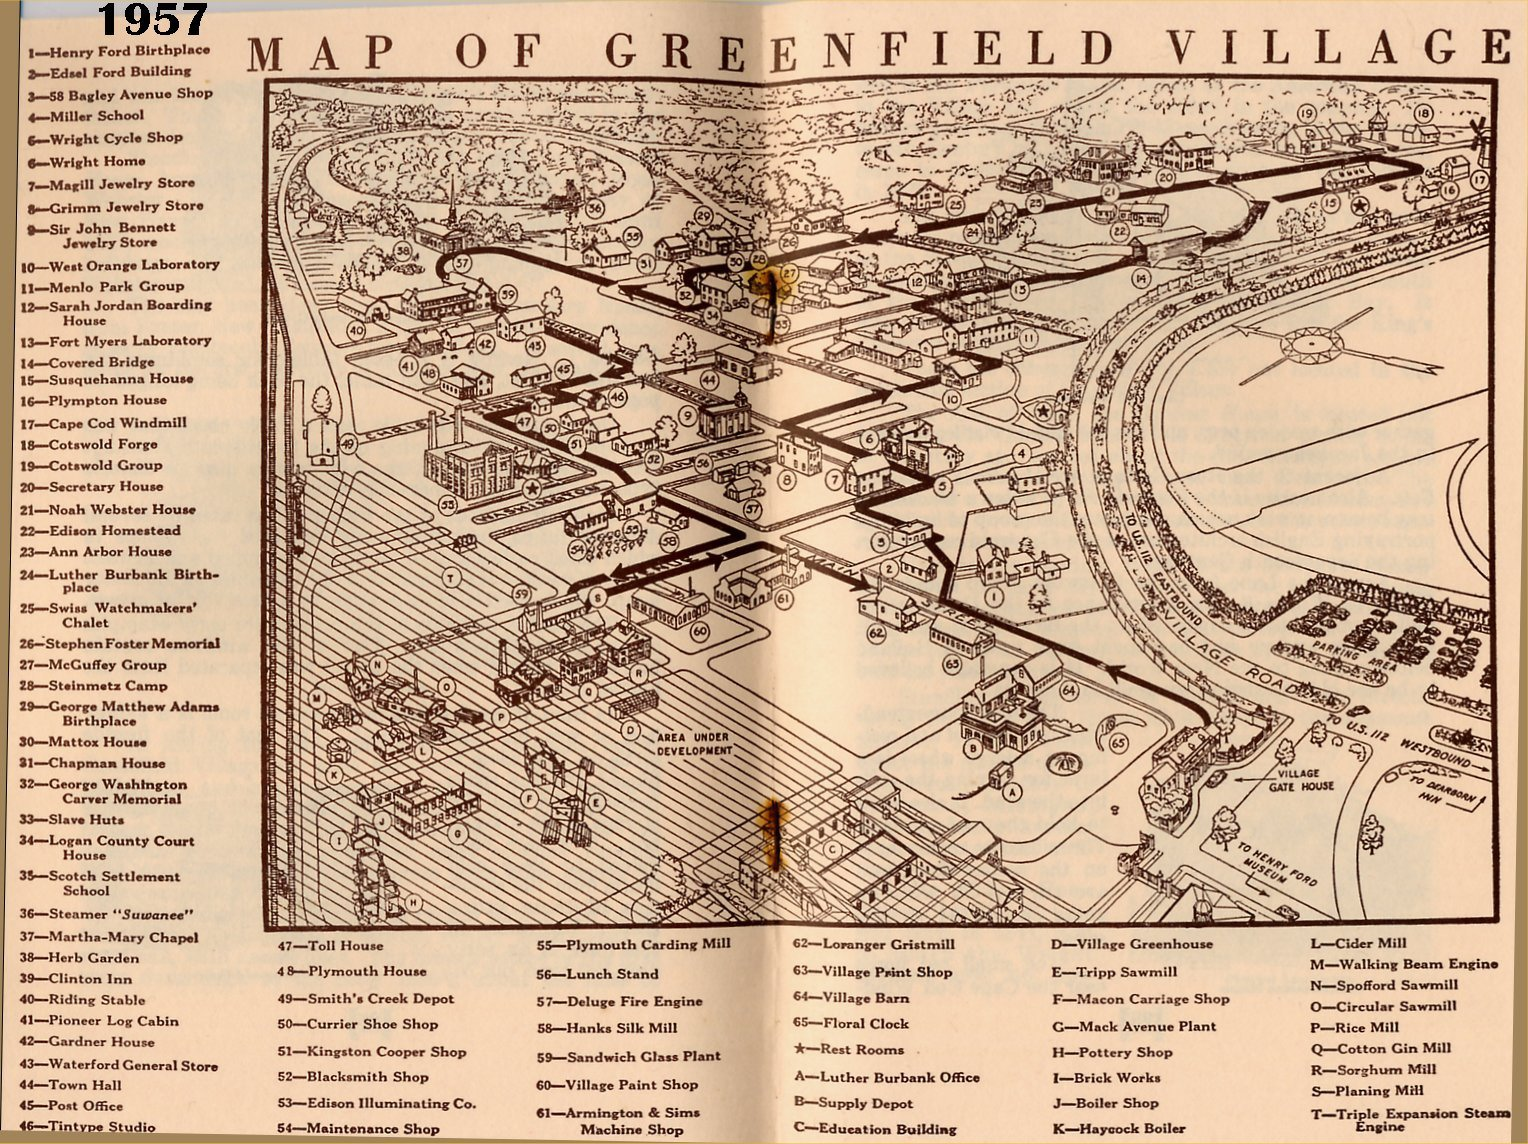 Greenfield Village OpenAir Museum Maps Through Time The